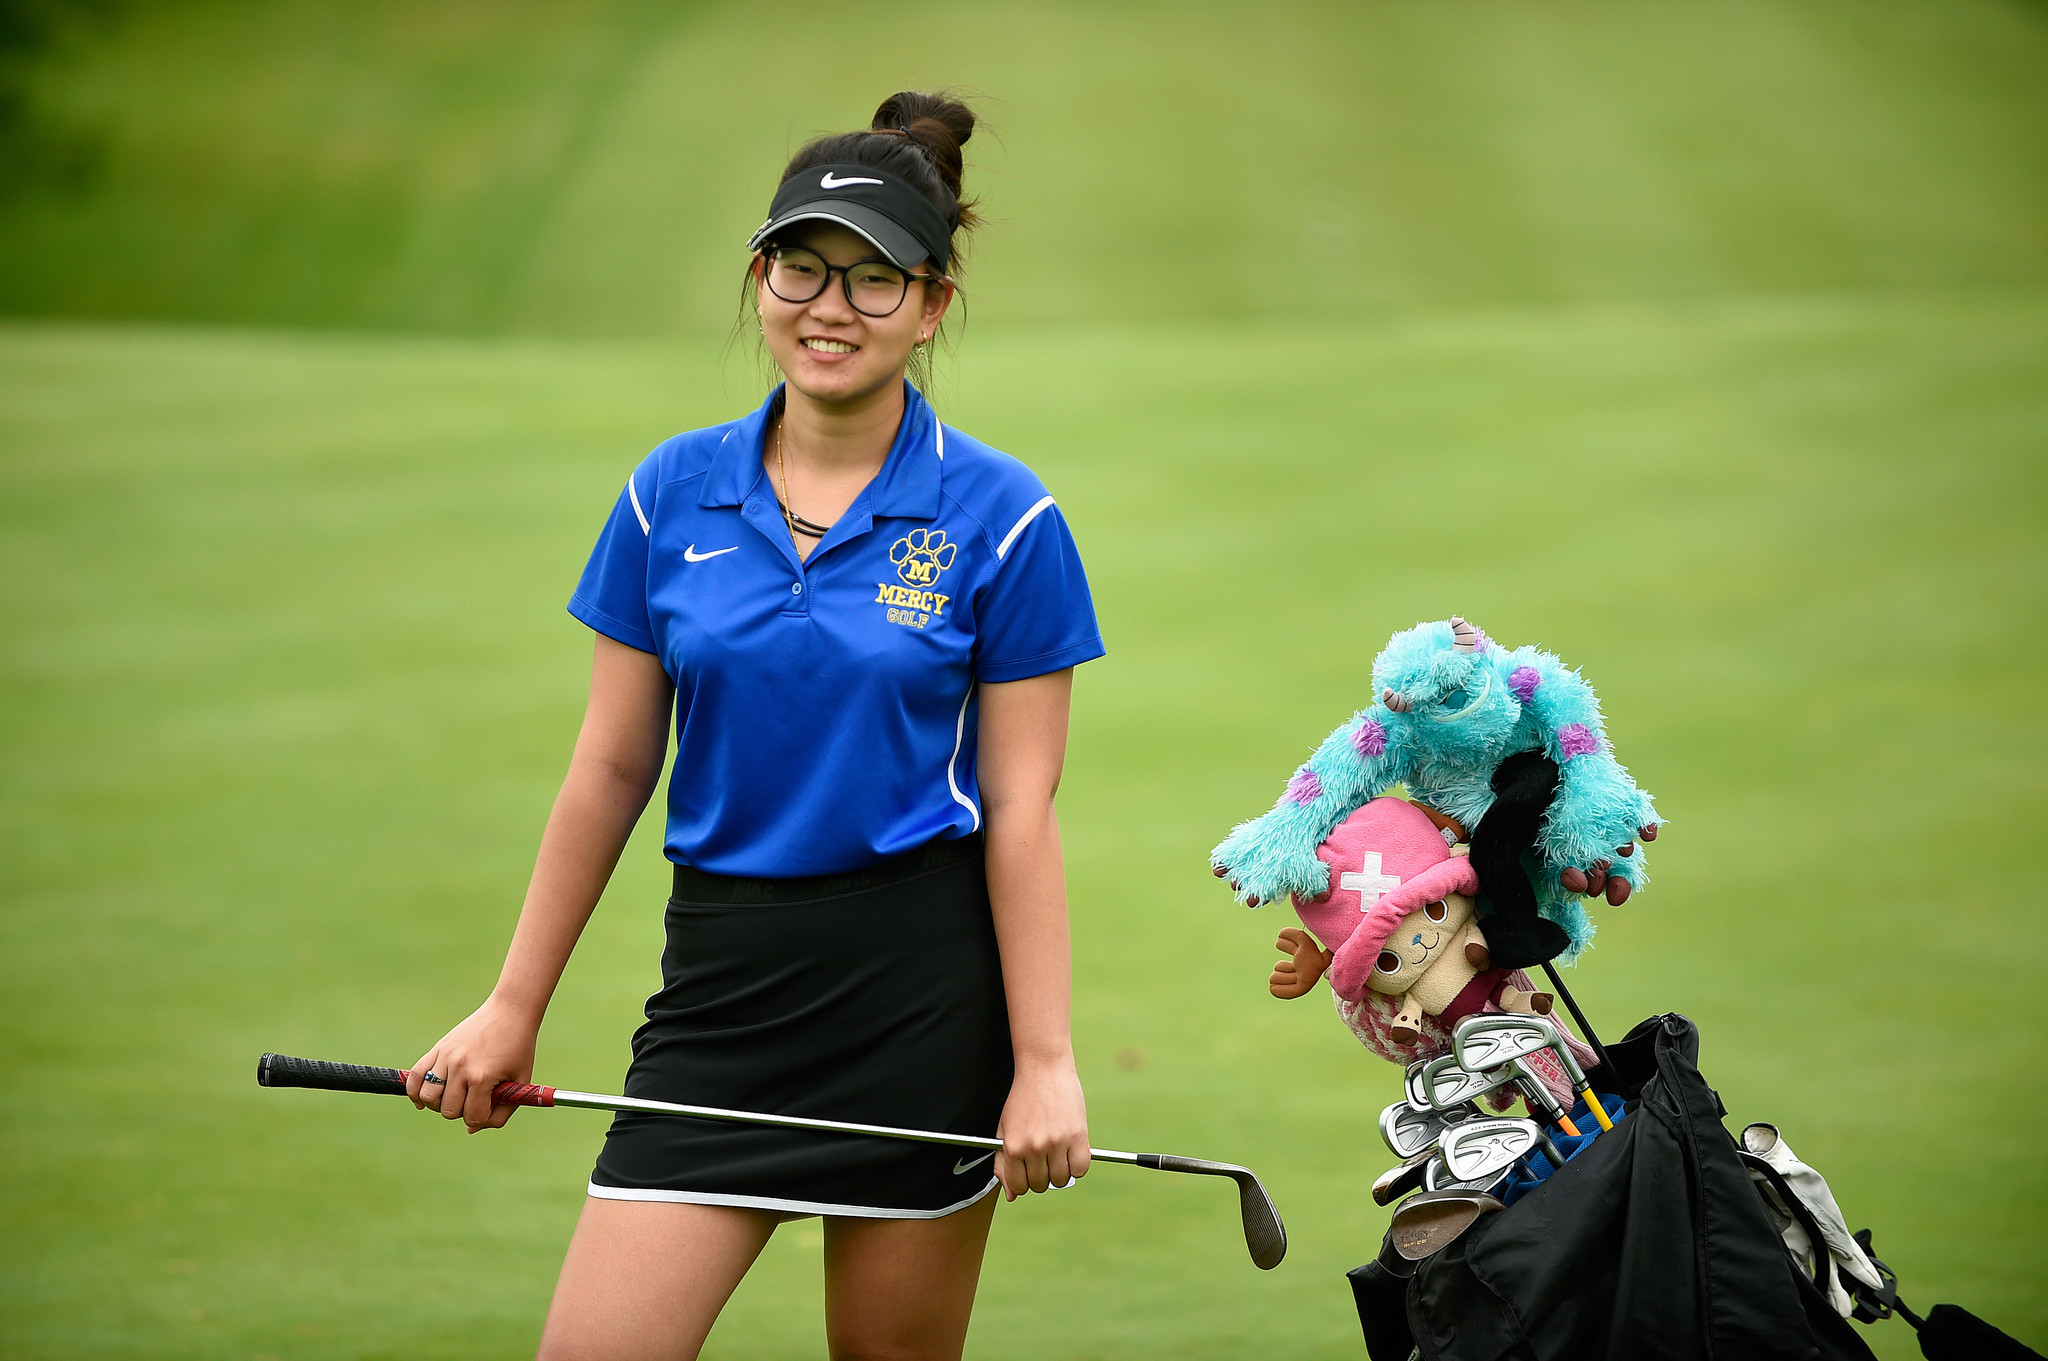 Spring preview: Staples girls golf ready for Greenwich challenge - Westport News